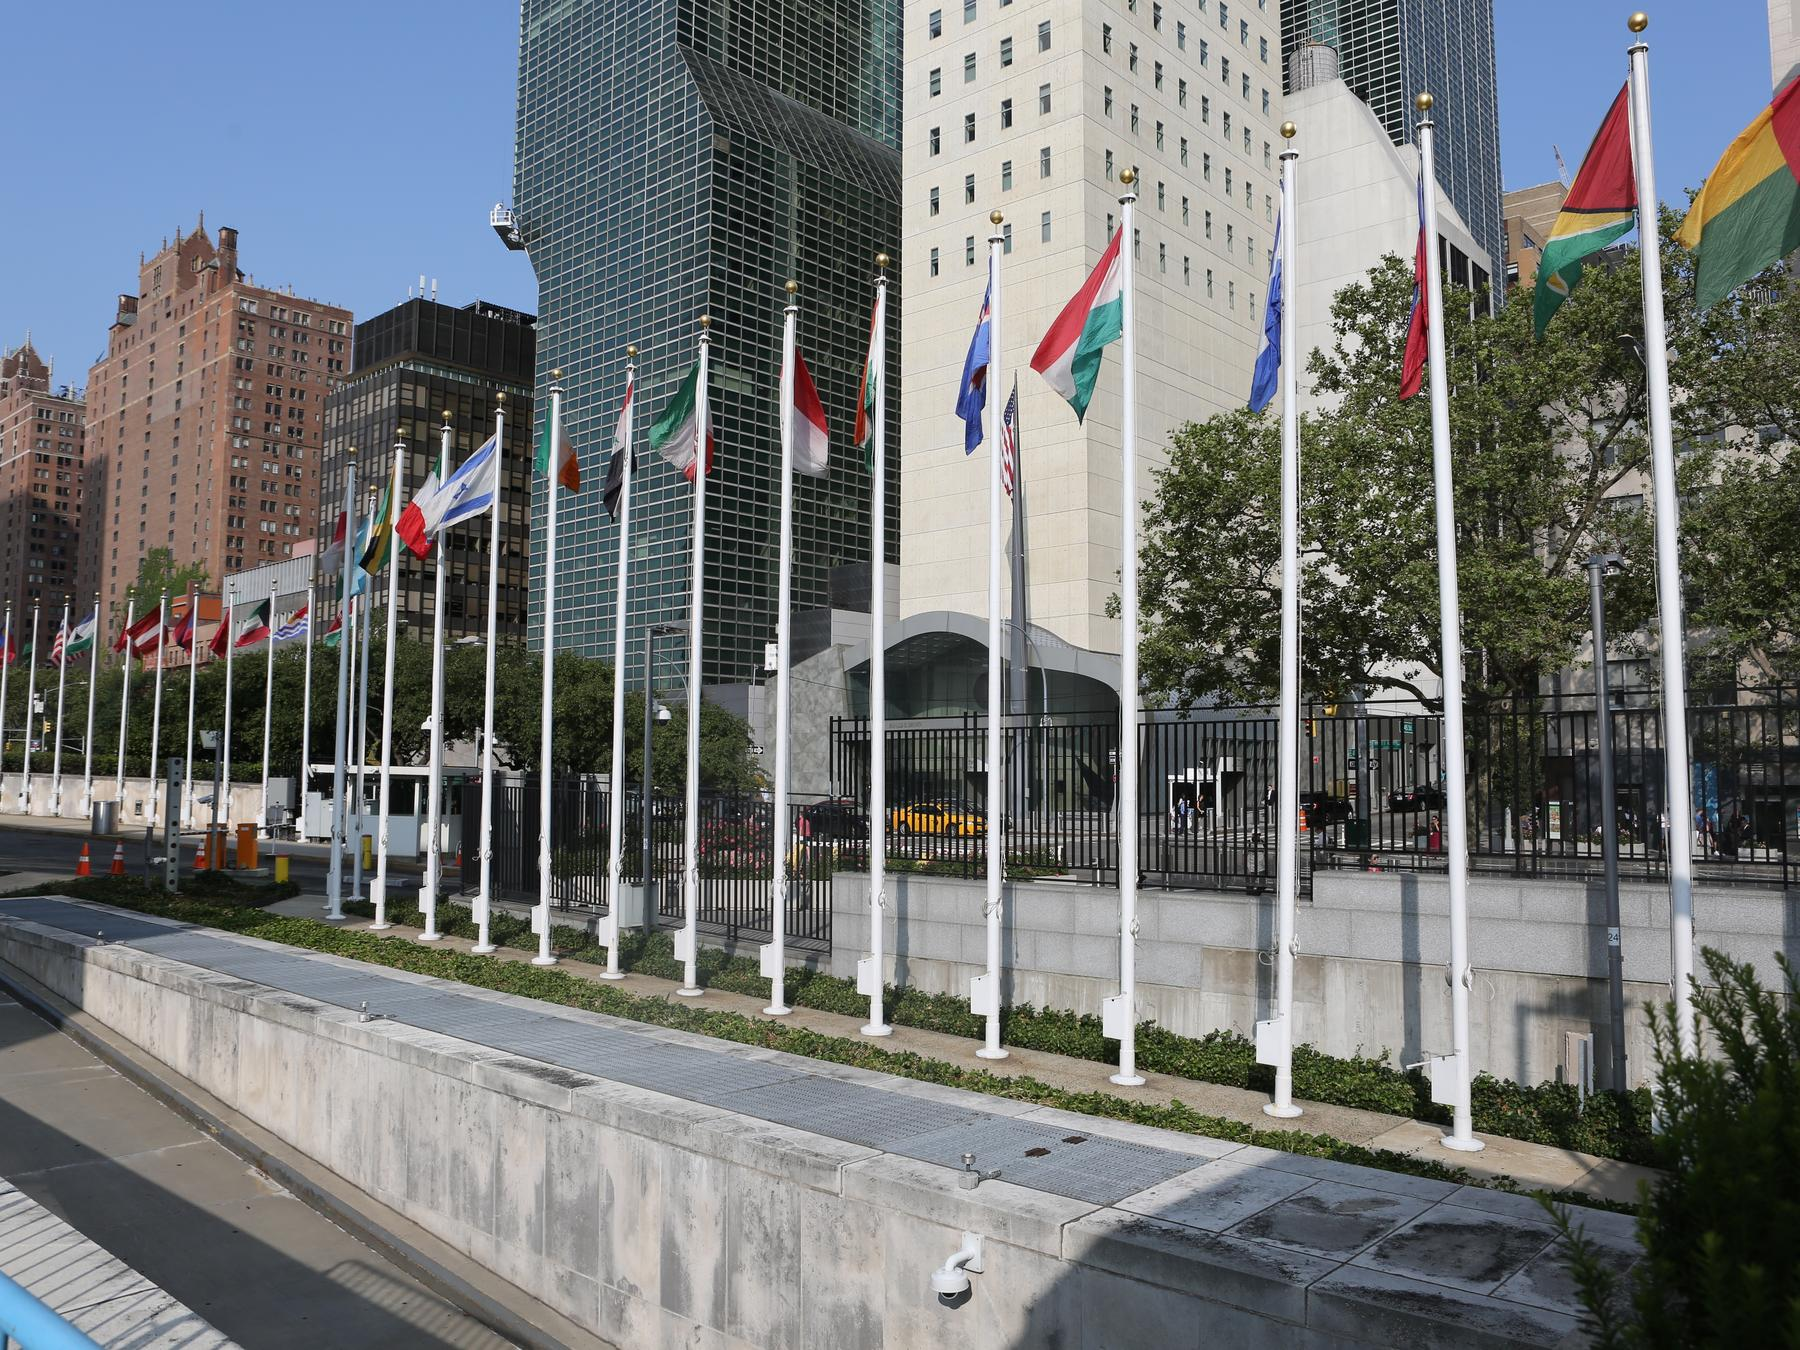 Flags at the United Nations in New York